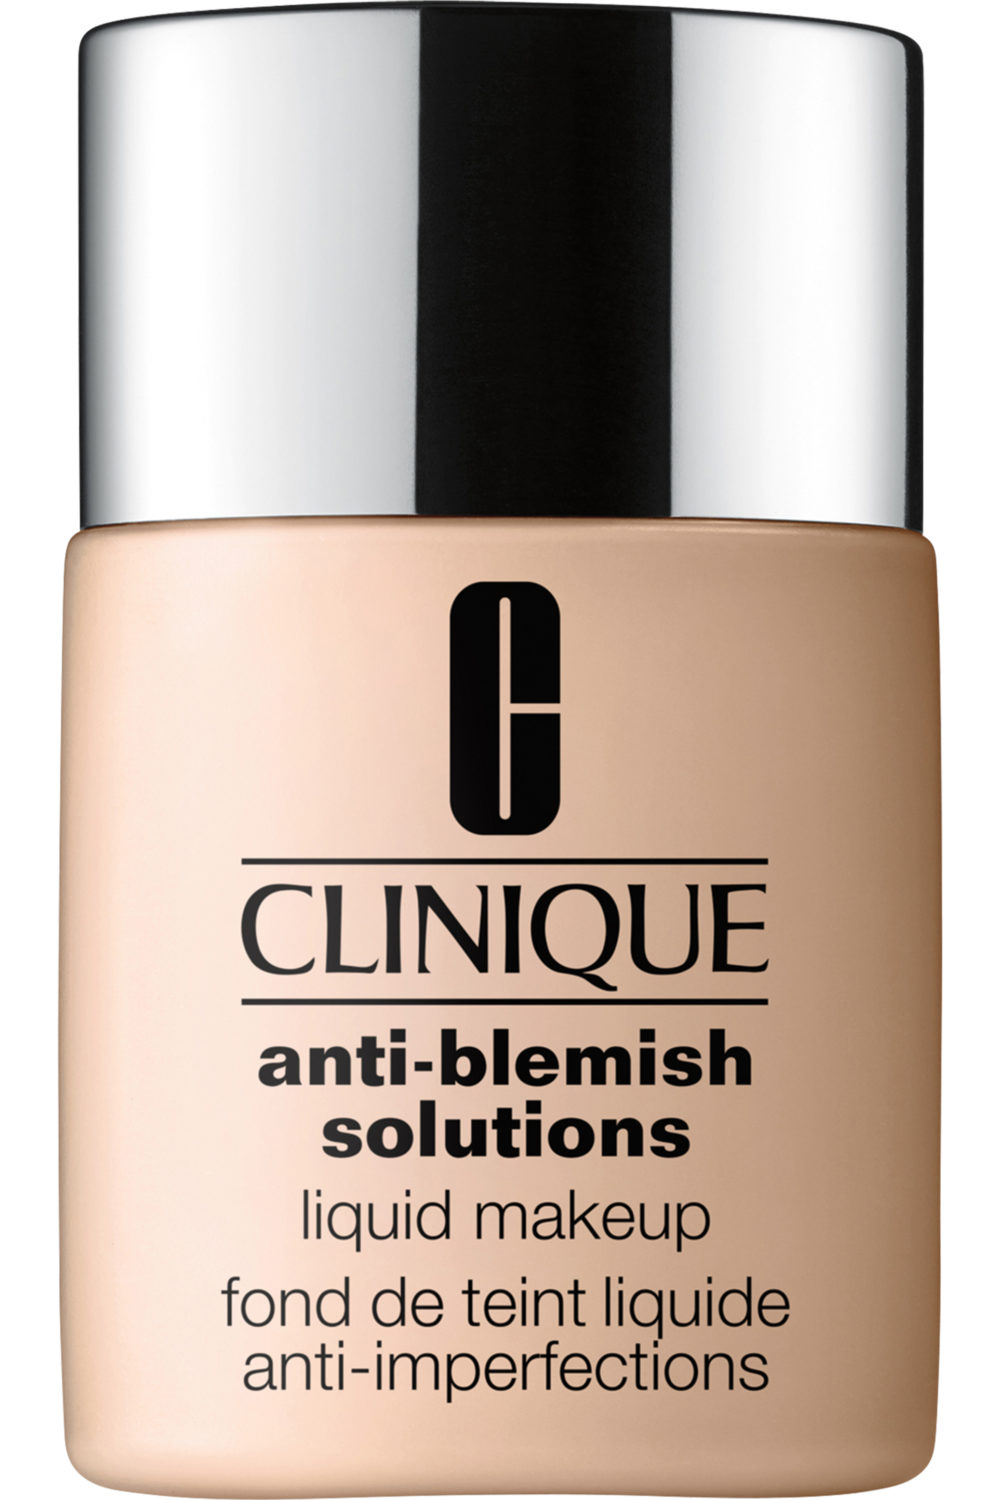 fond de teint clinique anti blemish